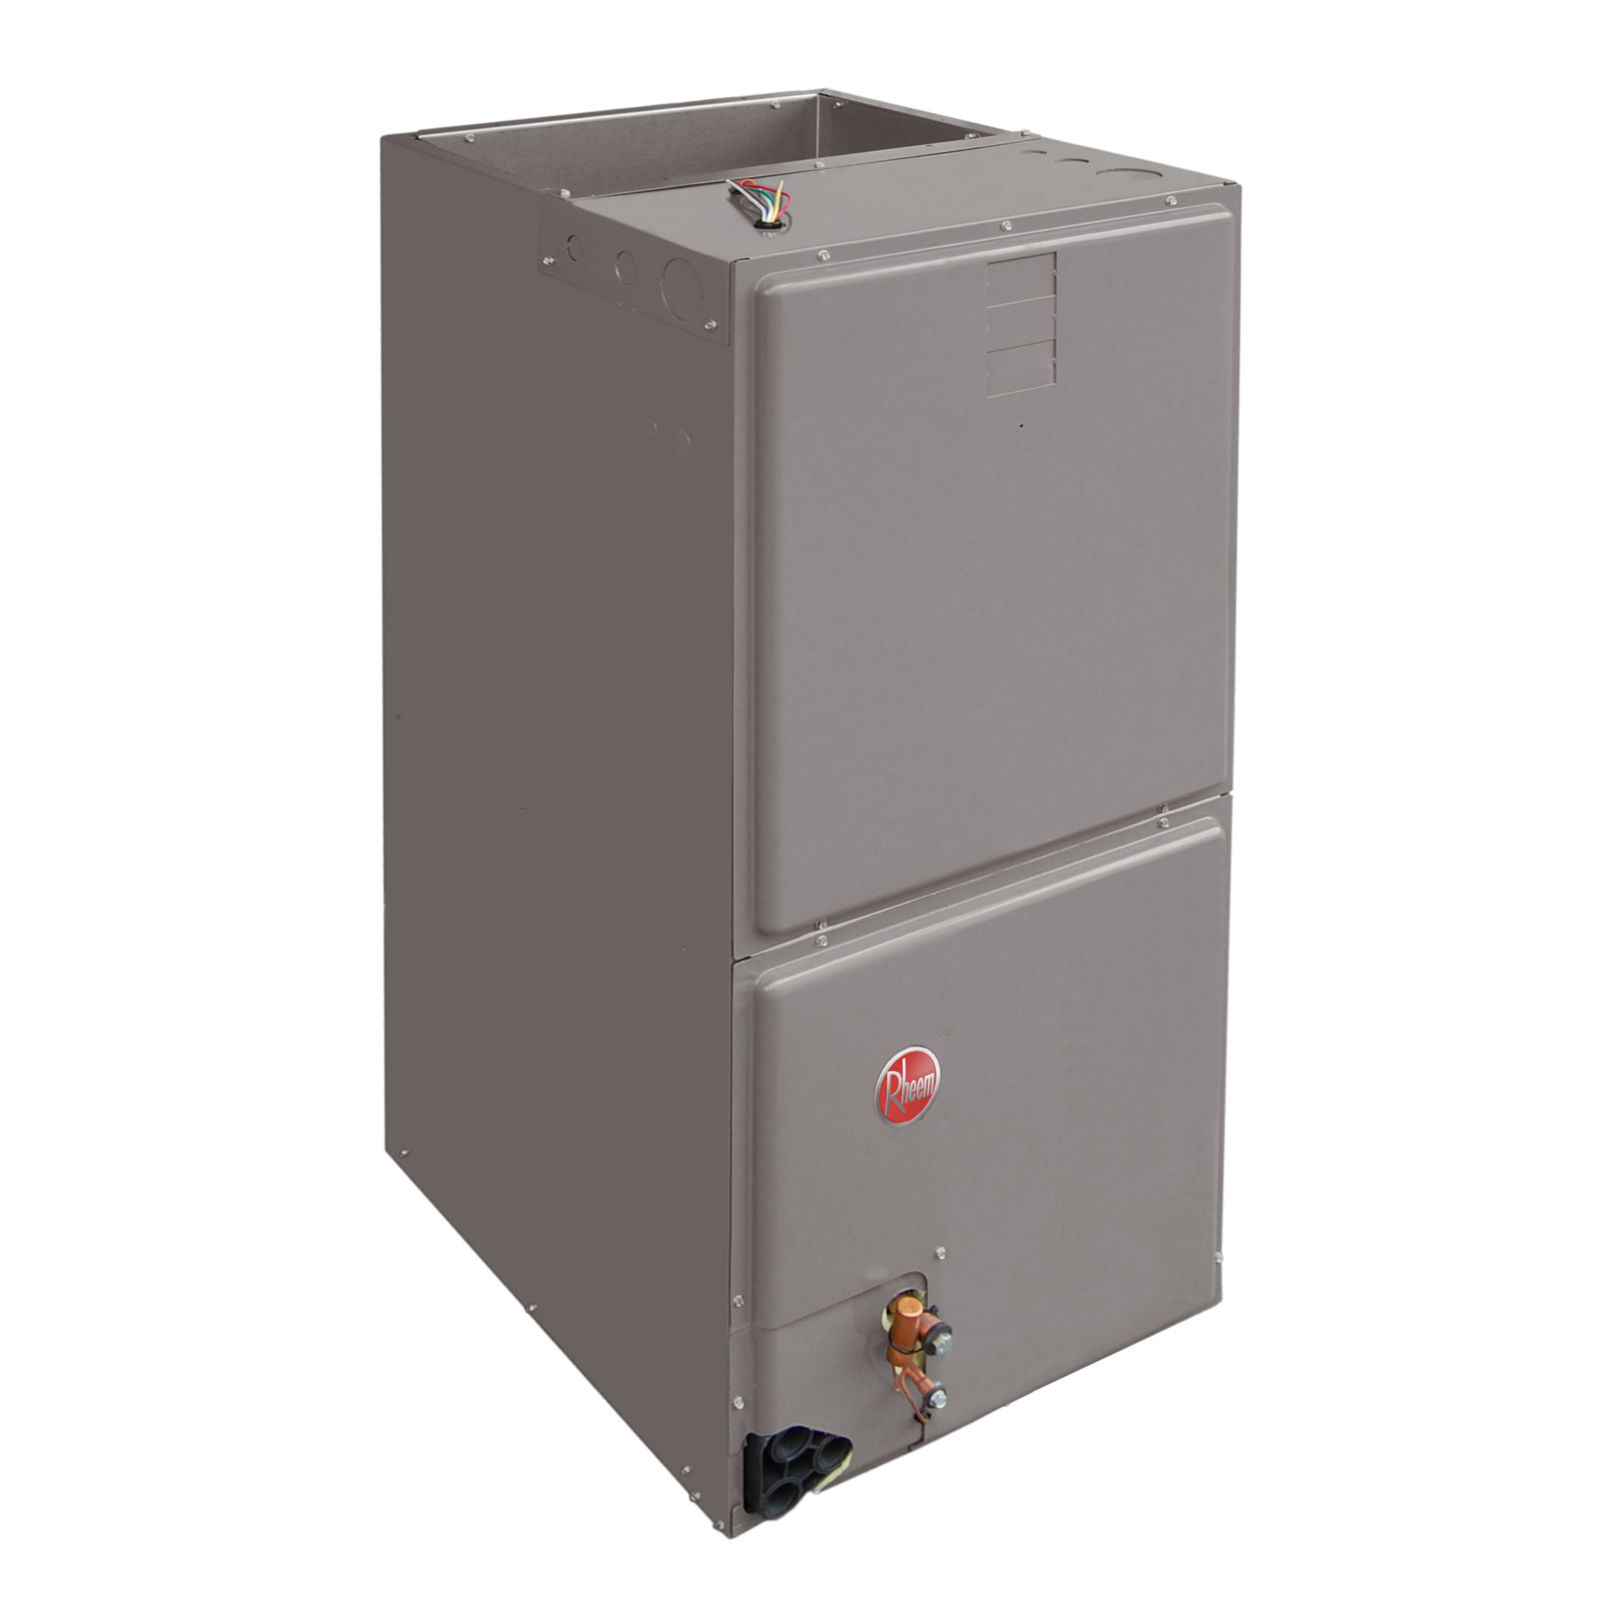 Rheem RH2T6024STANJA - 5 Ton, R-410A, Two Stage, Aluminum Air Handler, Constant Torque Motor, 208/240V, 1 Ph, 60 Hz